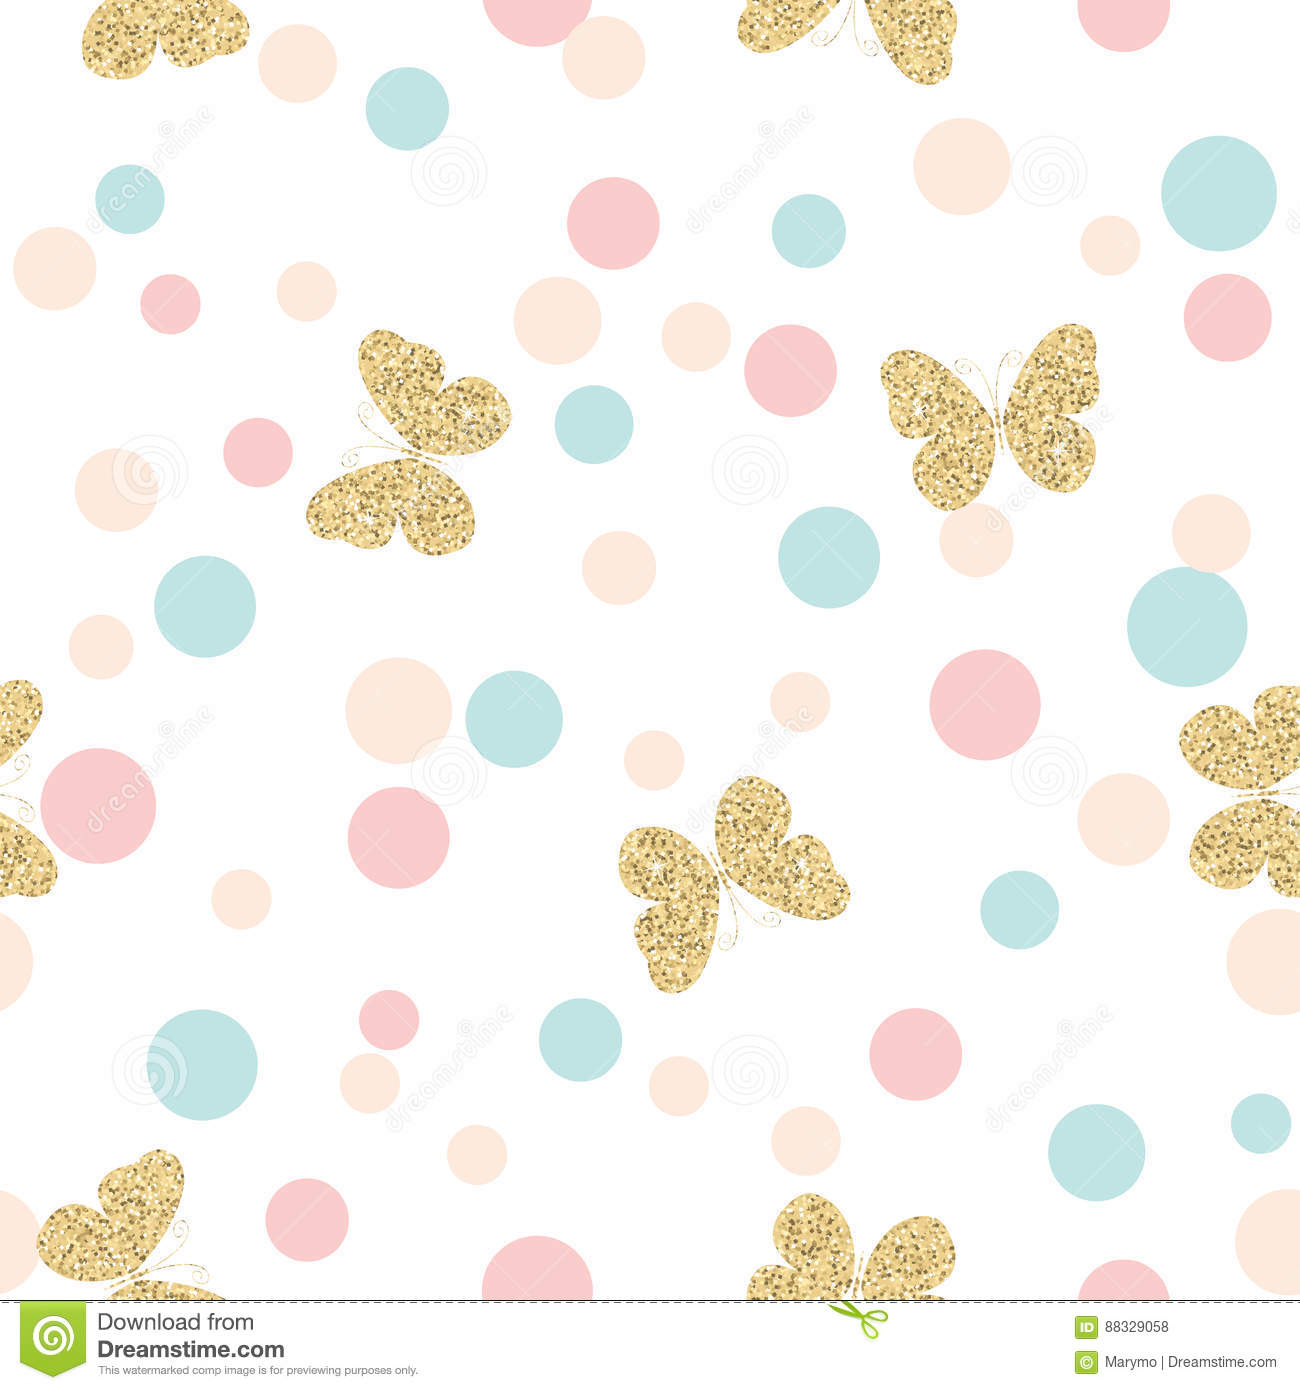 Royalty Free Vector Download Gold Glittering Butterflies Seamless Pattern On Pastel Colors Confetti Round Dots Background Stock Comp